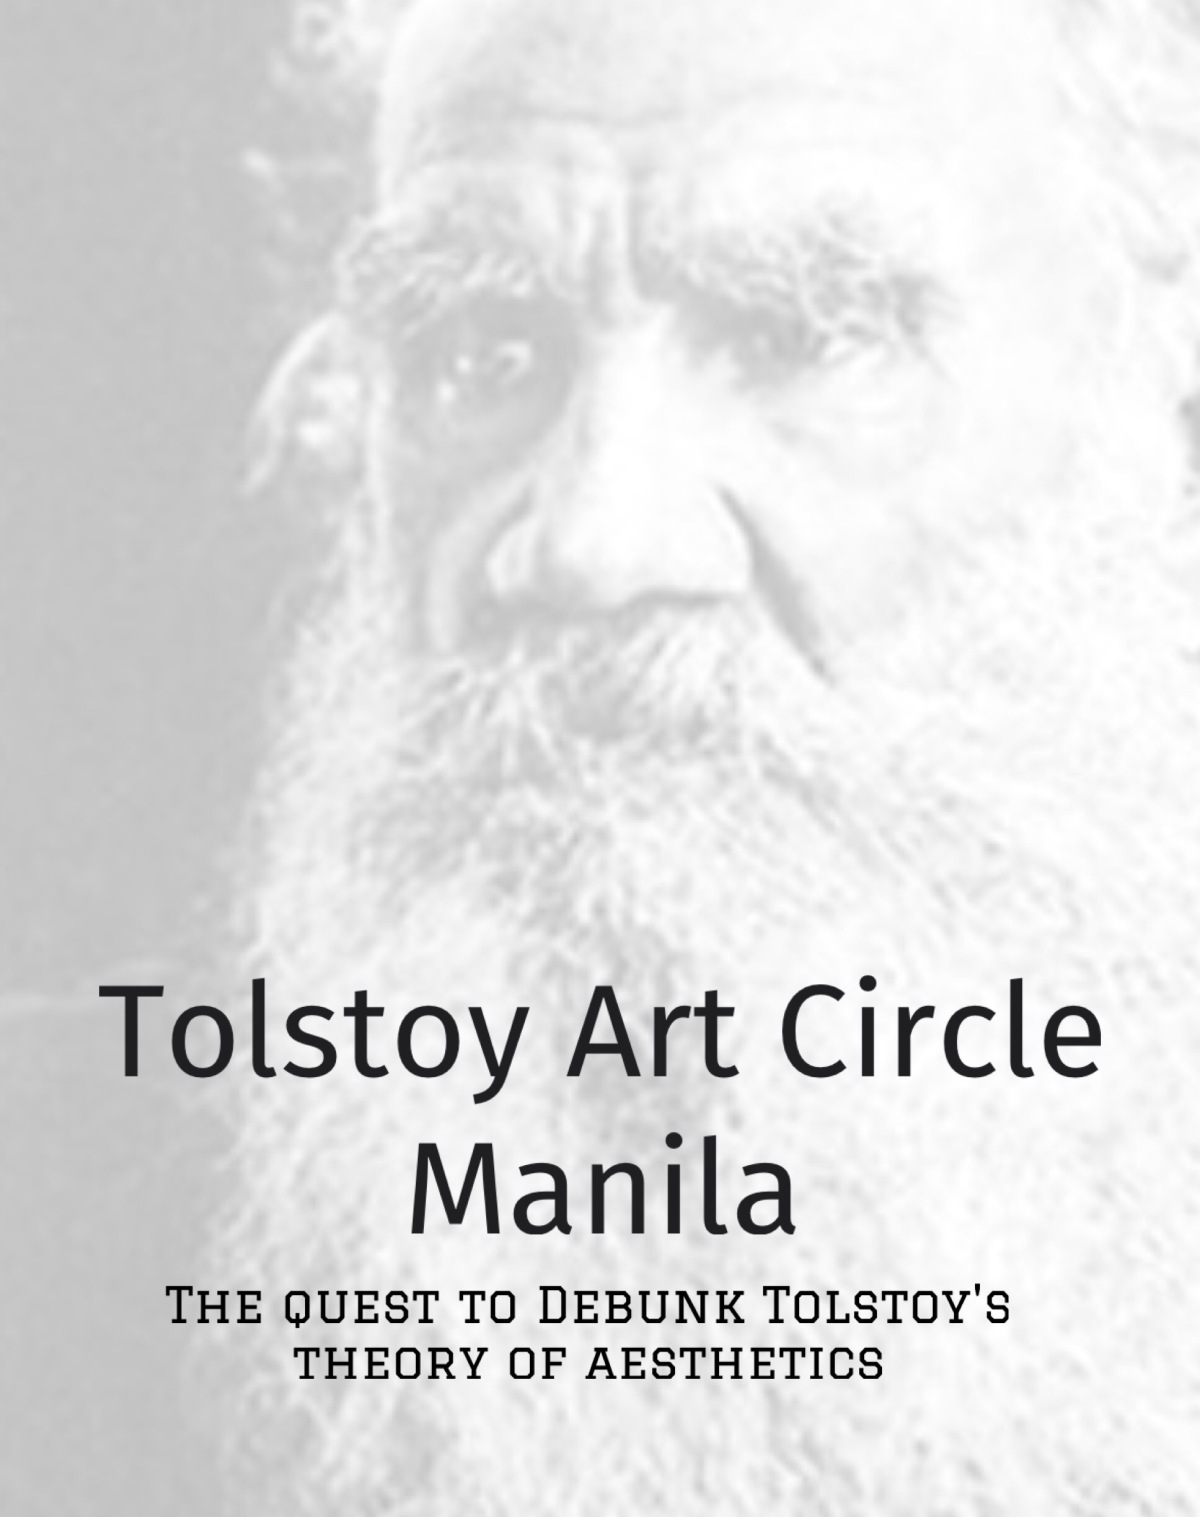 Tolstoy was wrong?